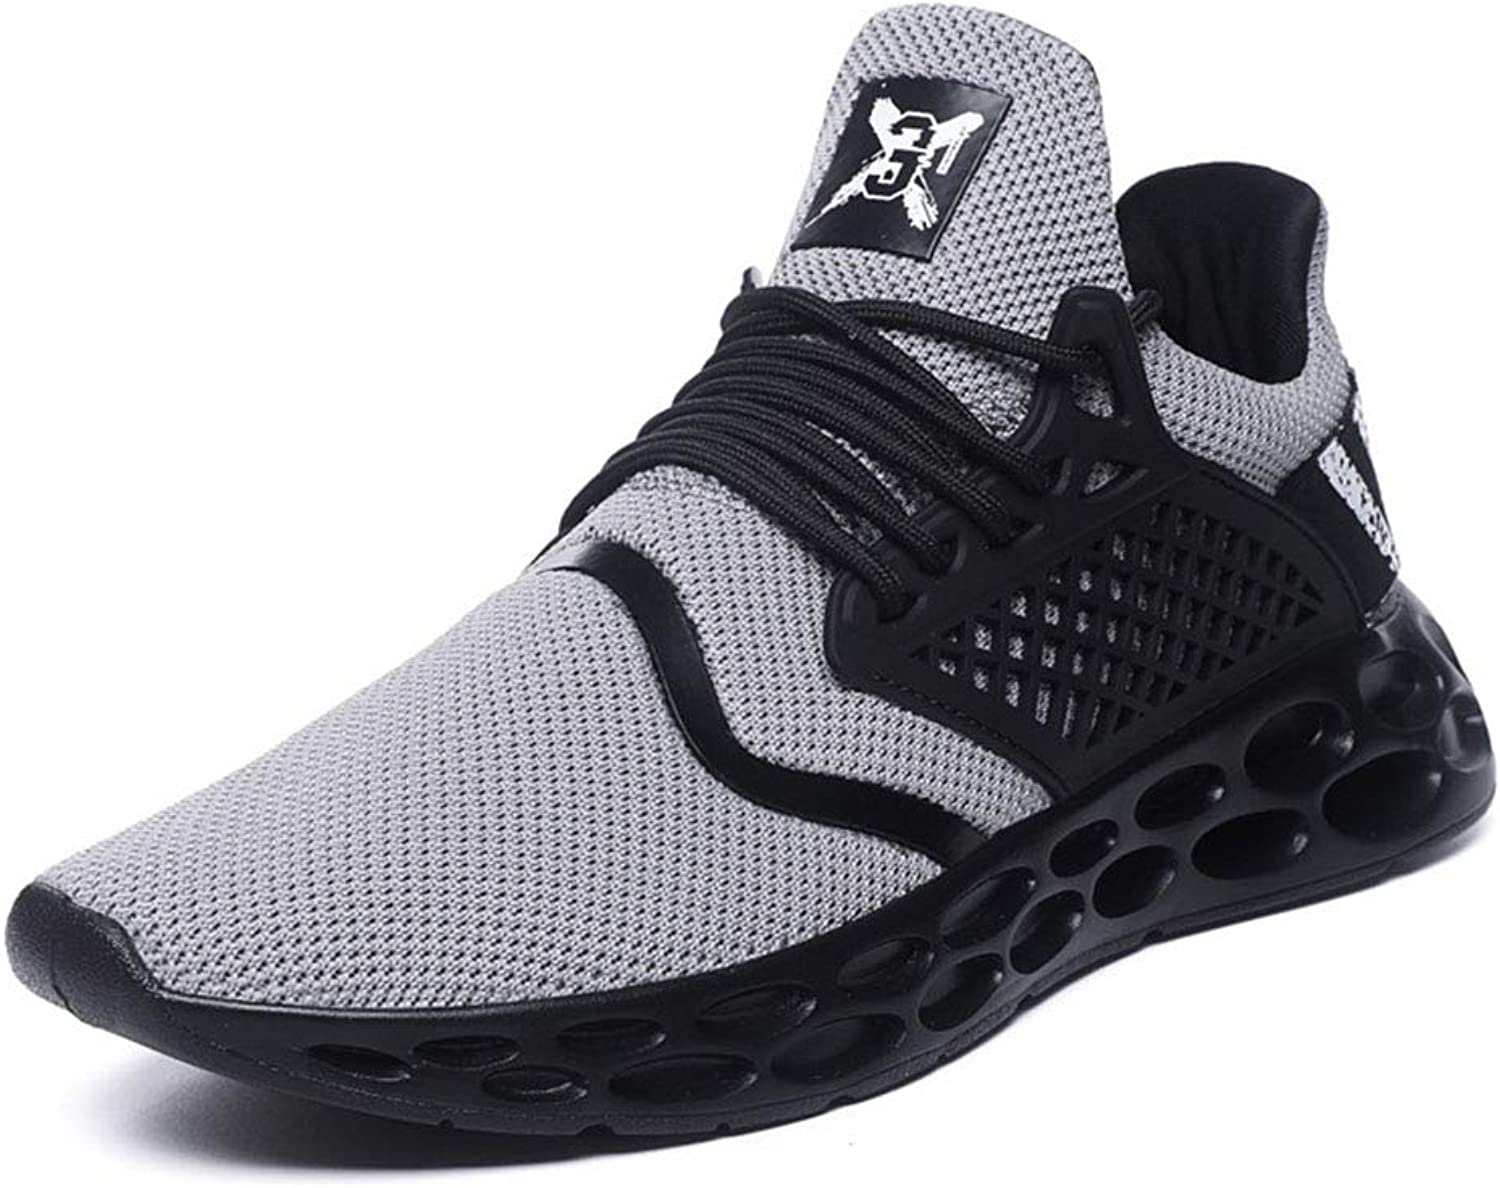 Spring And Summer Men Tide shoes Openwork shoes Damping Motion Casual shoes Teens Run Basketball shoes Large Size Fashion Student Dancing shoes 39-44